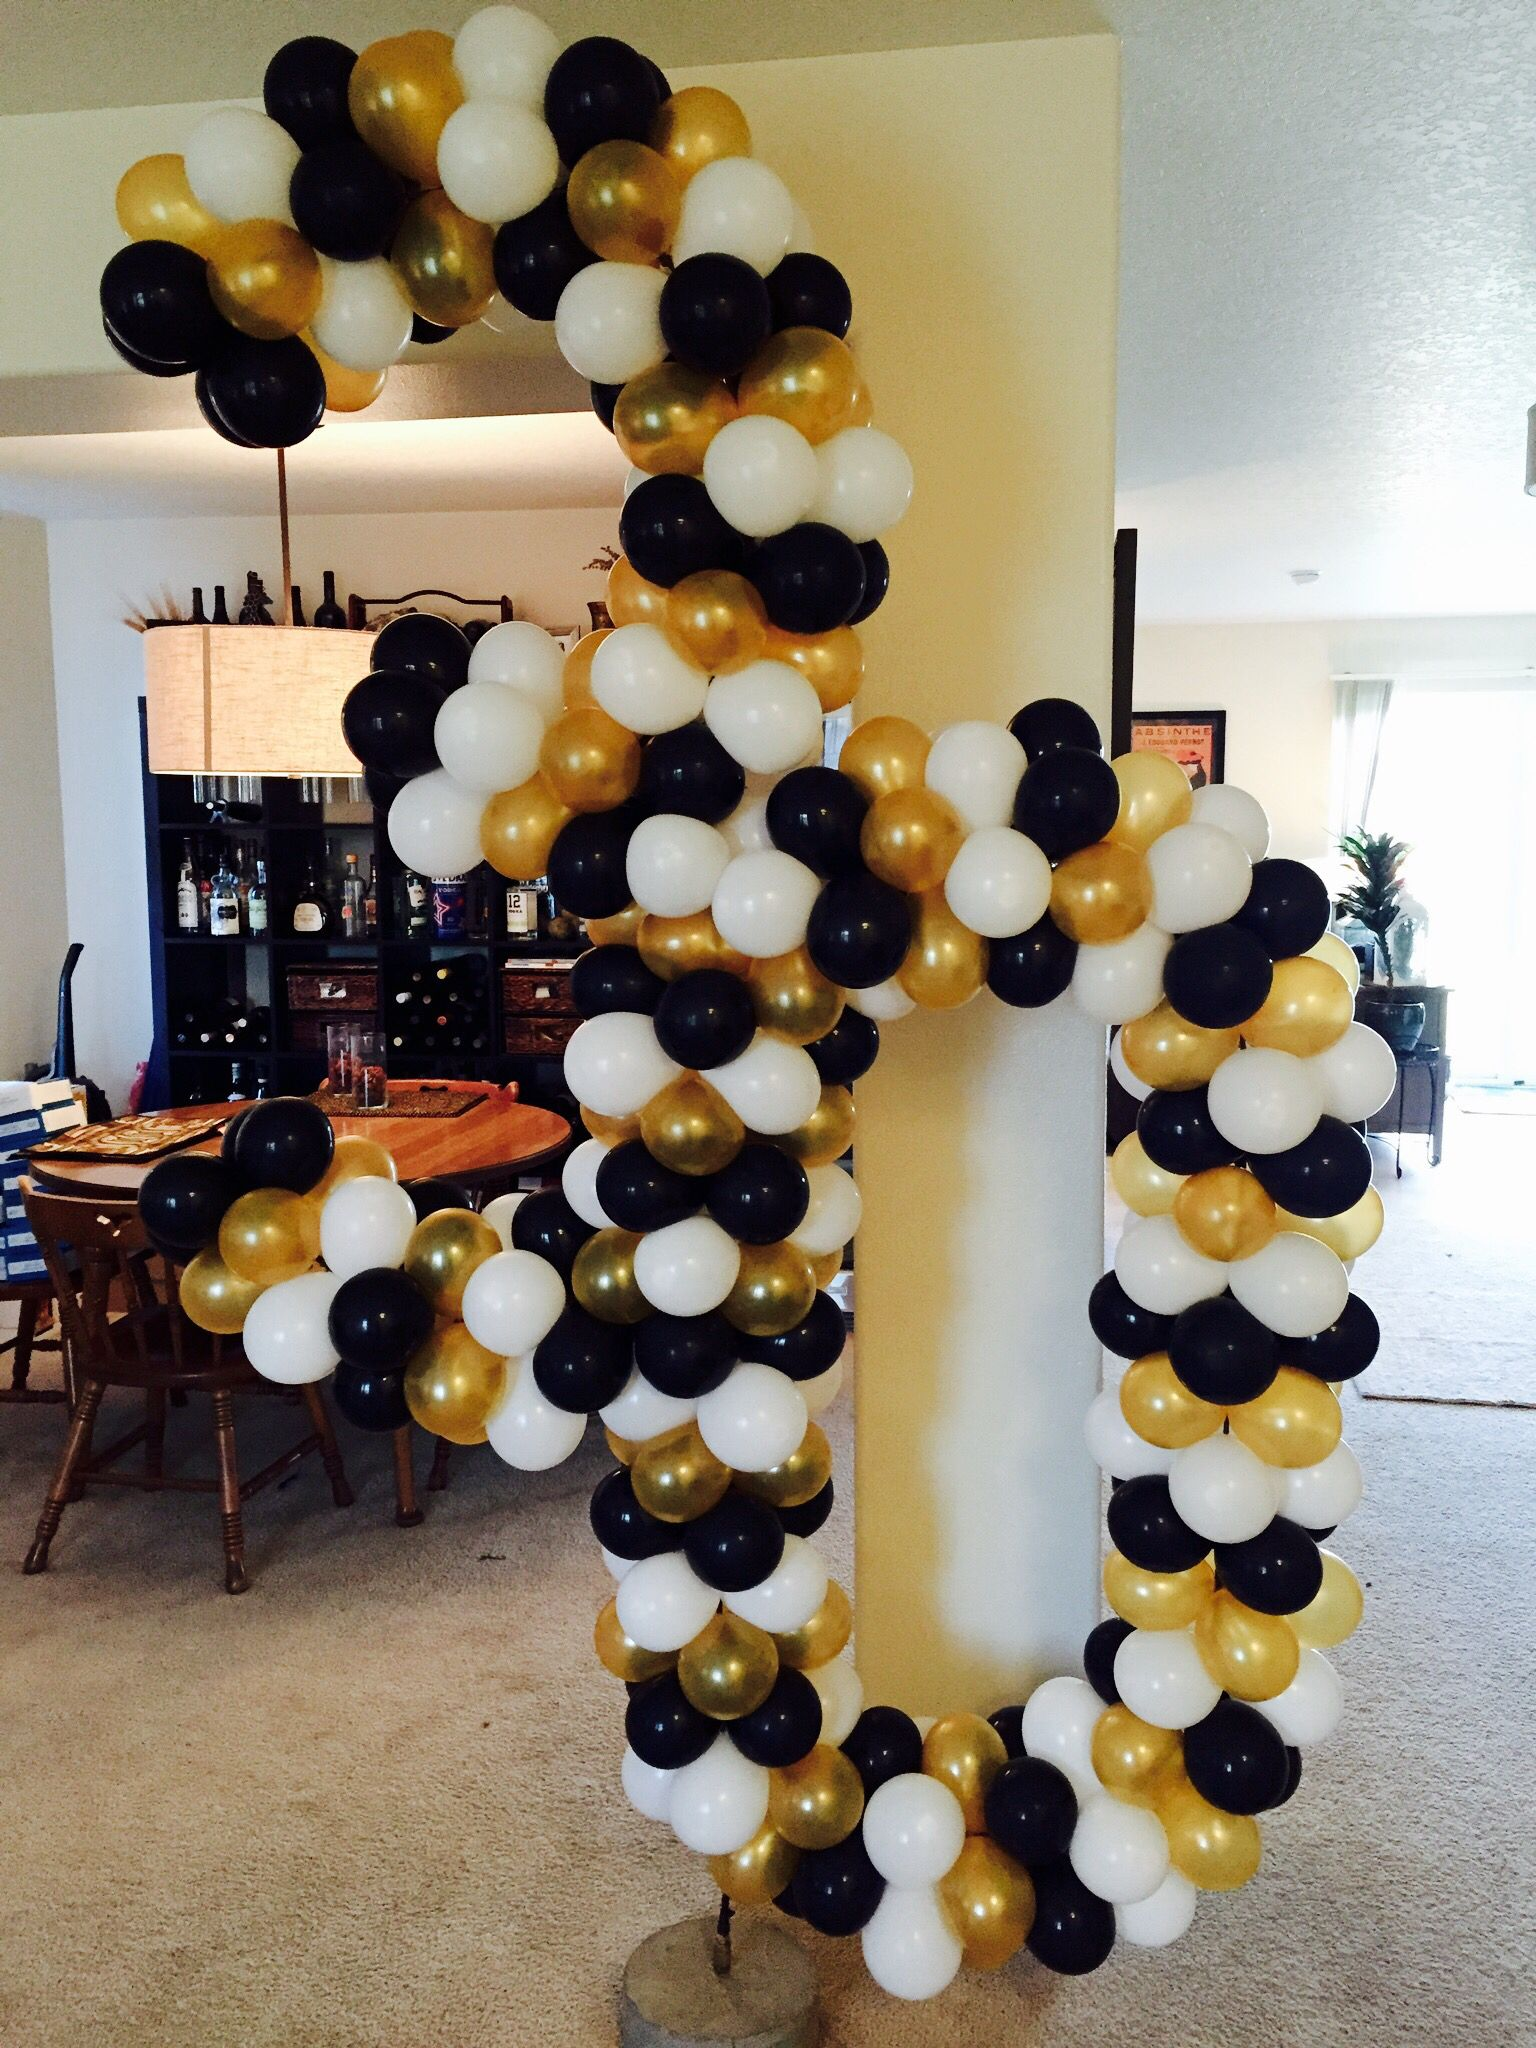 30th birthday balloons gold black and white up for 30th birthday decoration